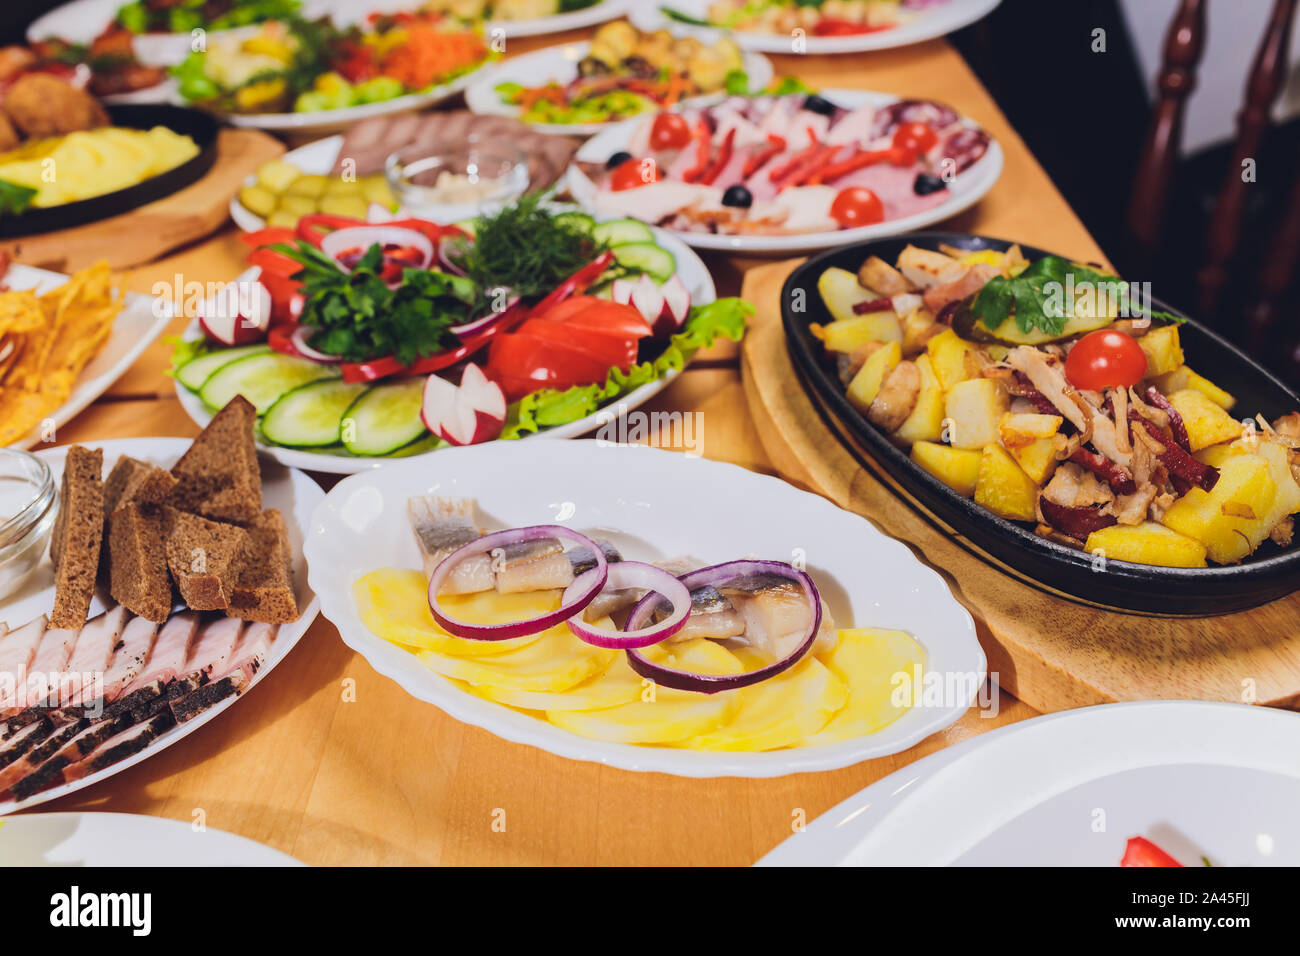 Food tray with delicious salami, pieces of sliced ham, sausage and salad. Meat platter with selection on table Stock Photo